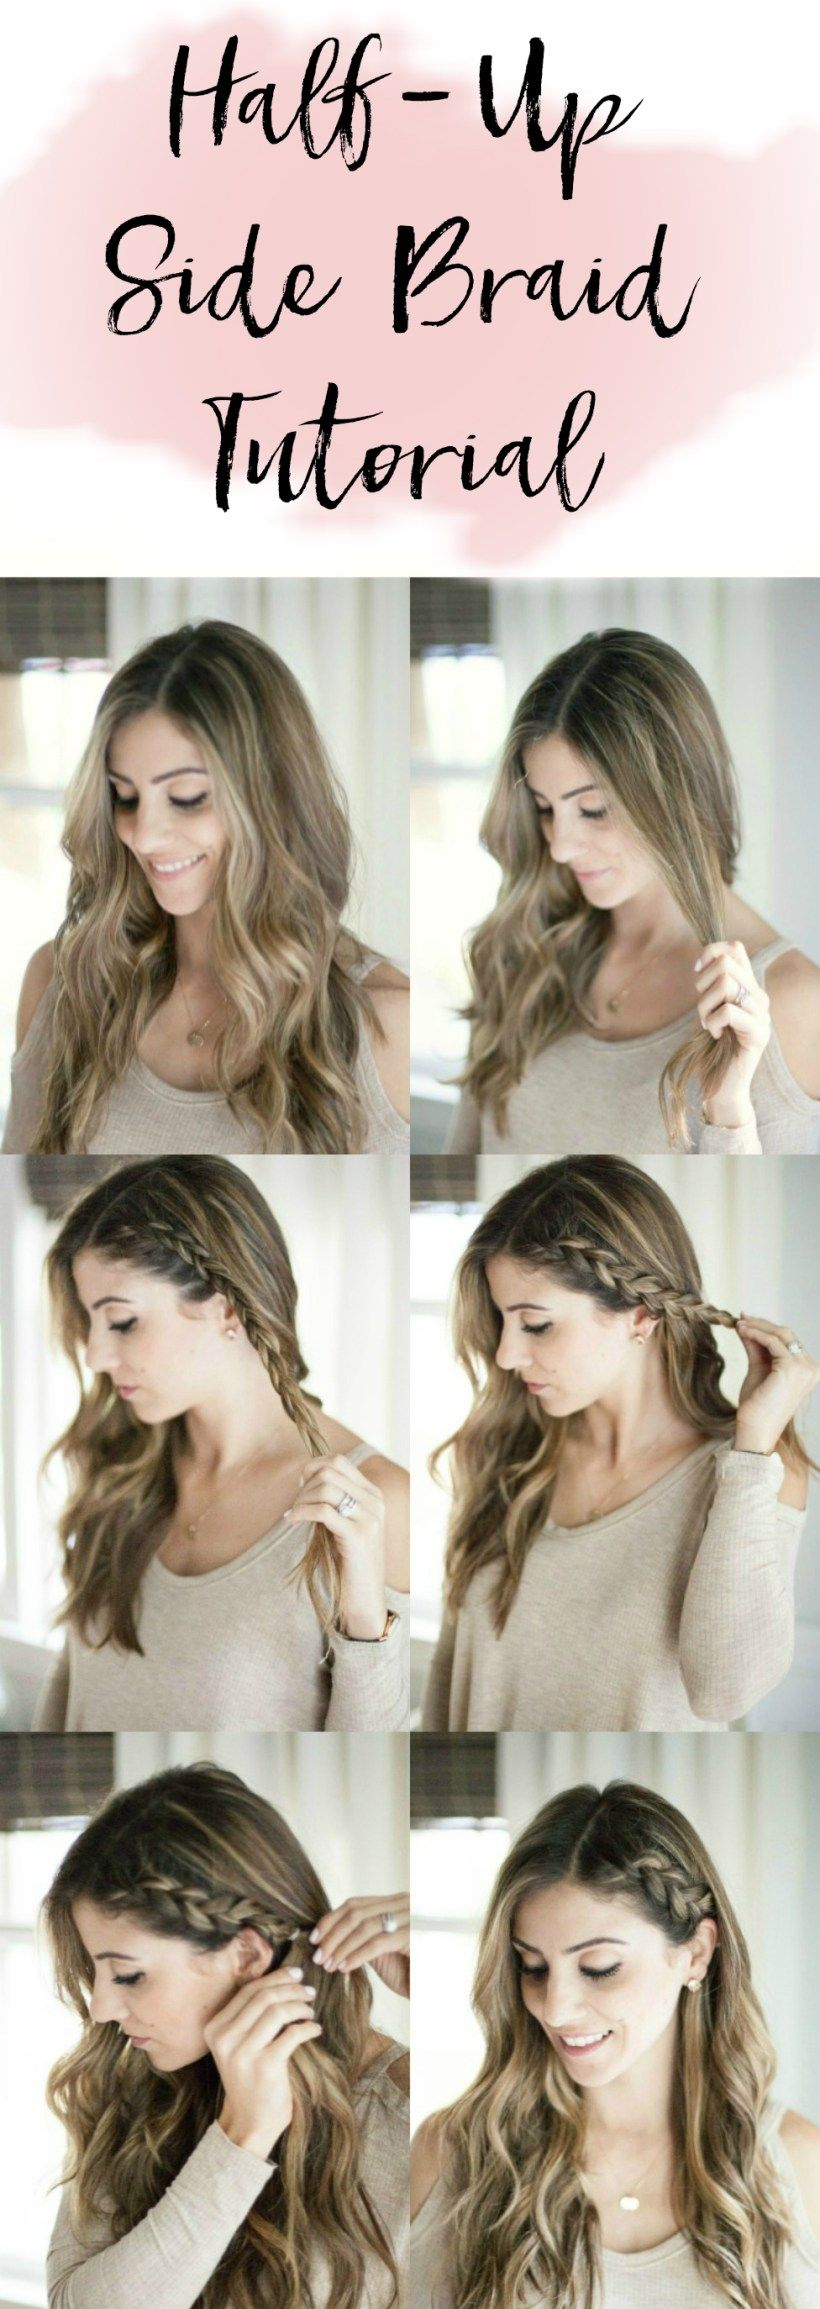 A simple half up side braid hair tutorial perfect for adding a little elegance to your normal hair style! | Easy Hair Tutorial | Hair Braiding Tips and Tricks | Easy Braided Hair Style Ideas | How to Braid Your Hair | Hair Tutorial | DIY Hair Styles | Hai